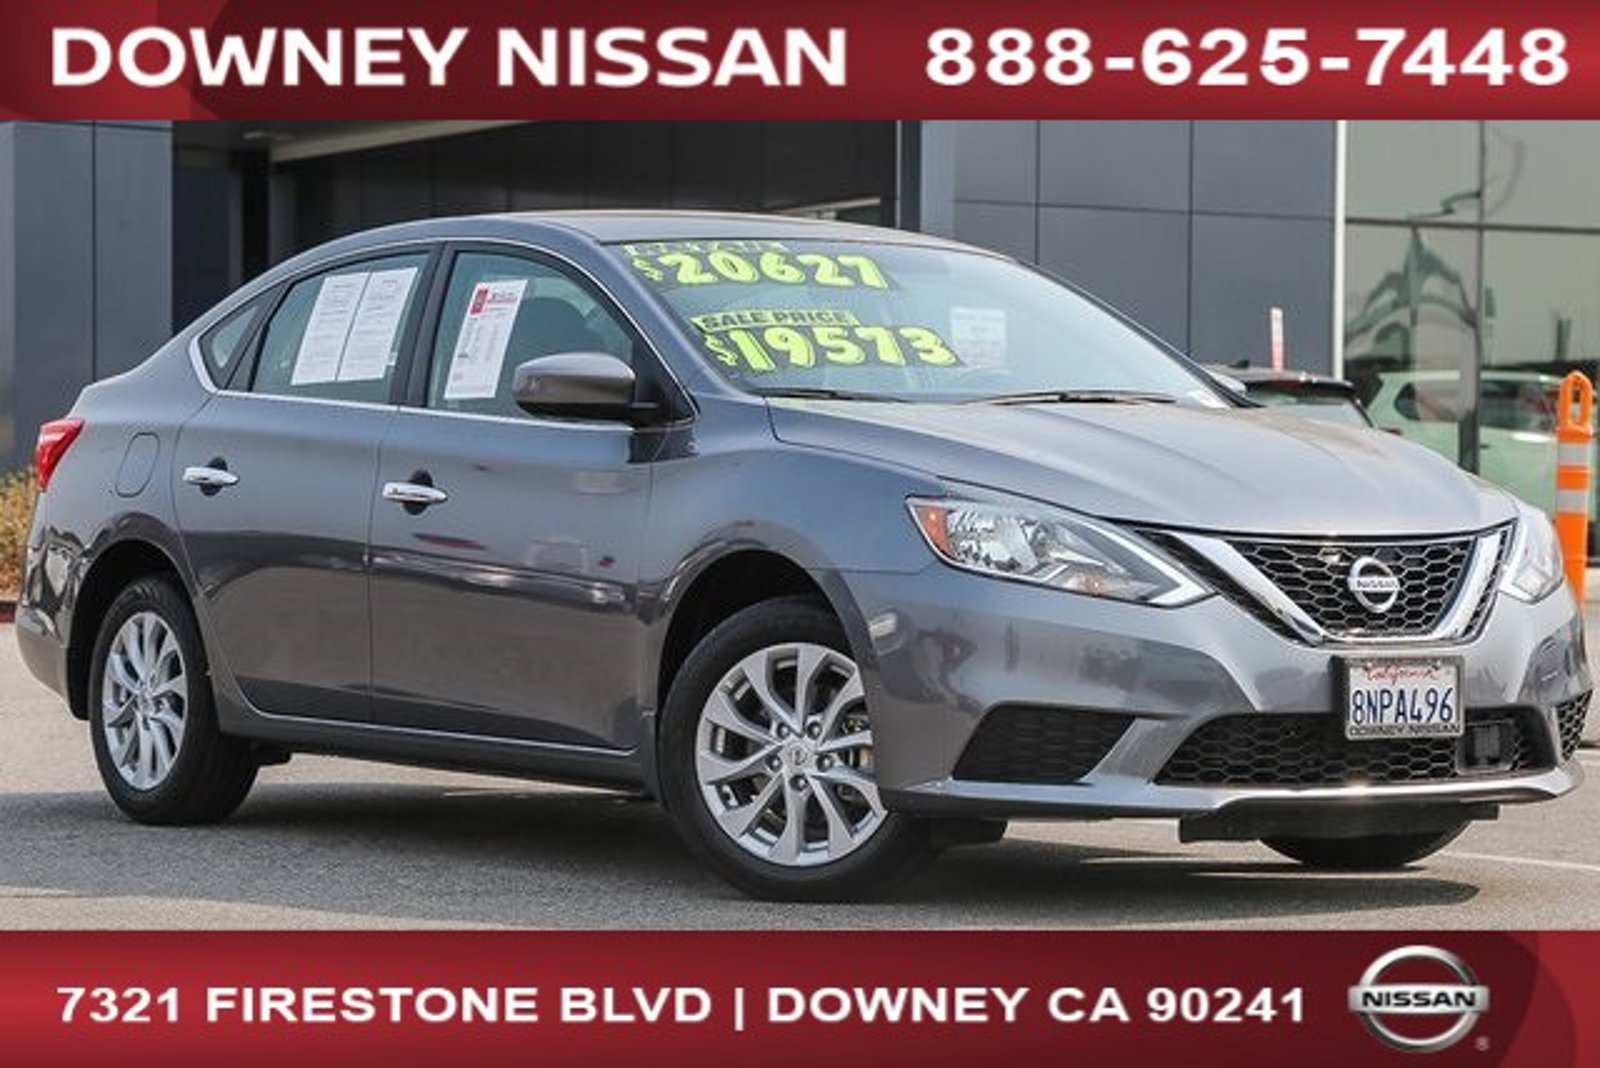 2019 Nissan Sentra SV SV CVT Regular Unleaded I-4 1.8 L/110 [18]